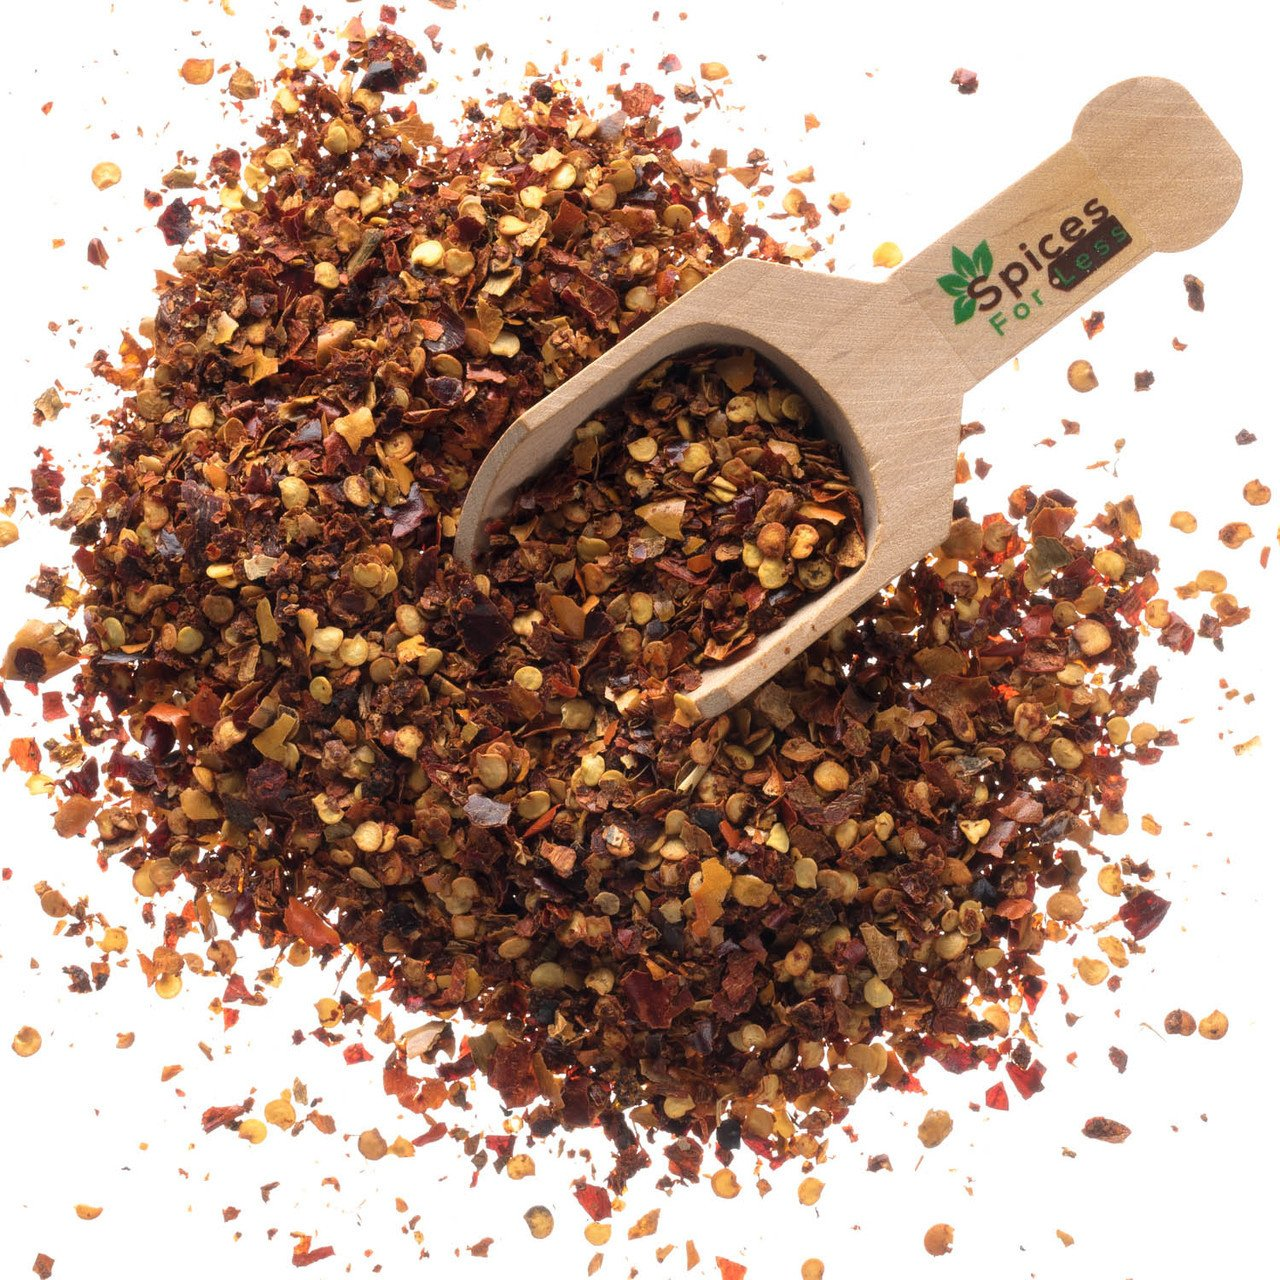 Crushed Red Pepper - 2 LBS - Resealable Bag - Premium Quality by Spices For Less (Image #1)